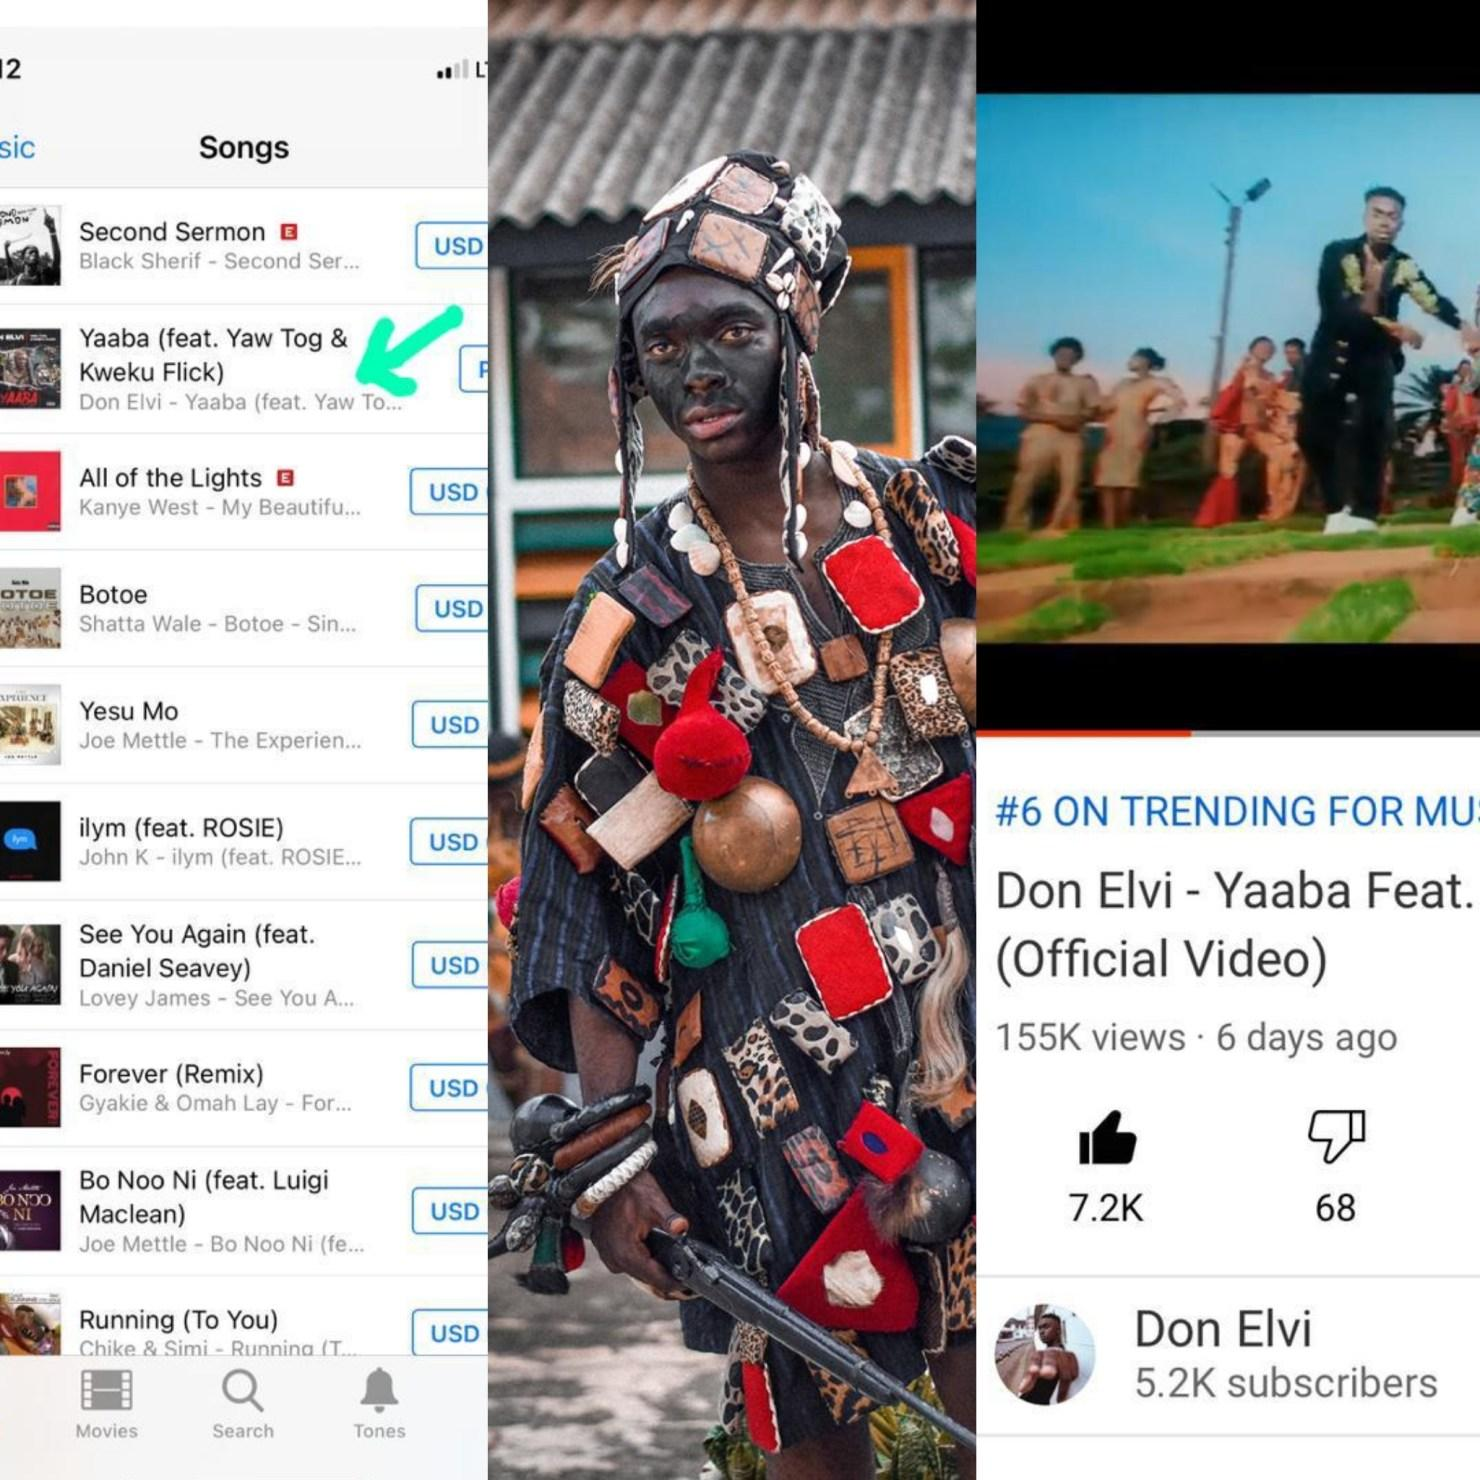 Don Elvi's Yaaba Hit Trends 2nd On ITunes Chart 6th On YouTube In Less Than A Week